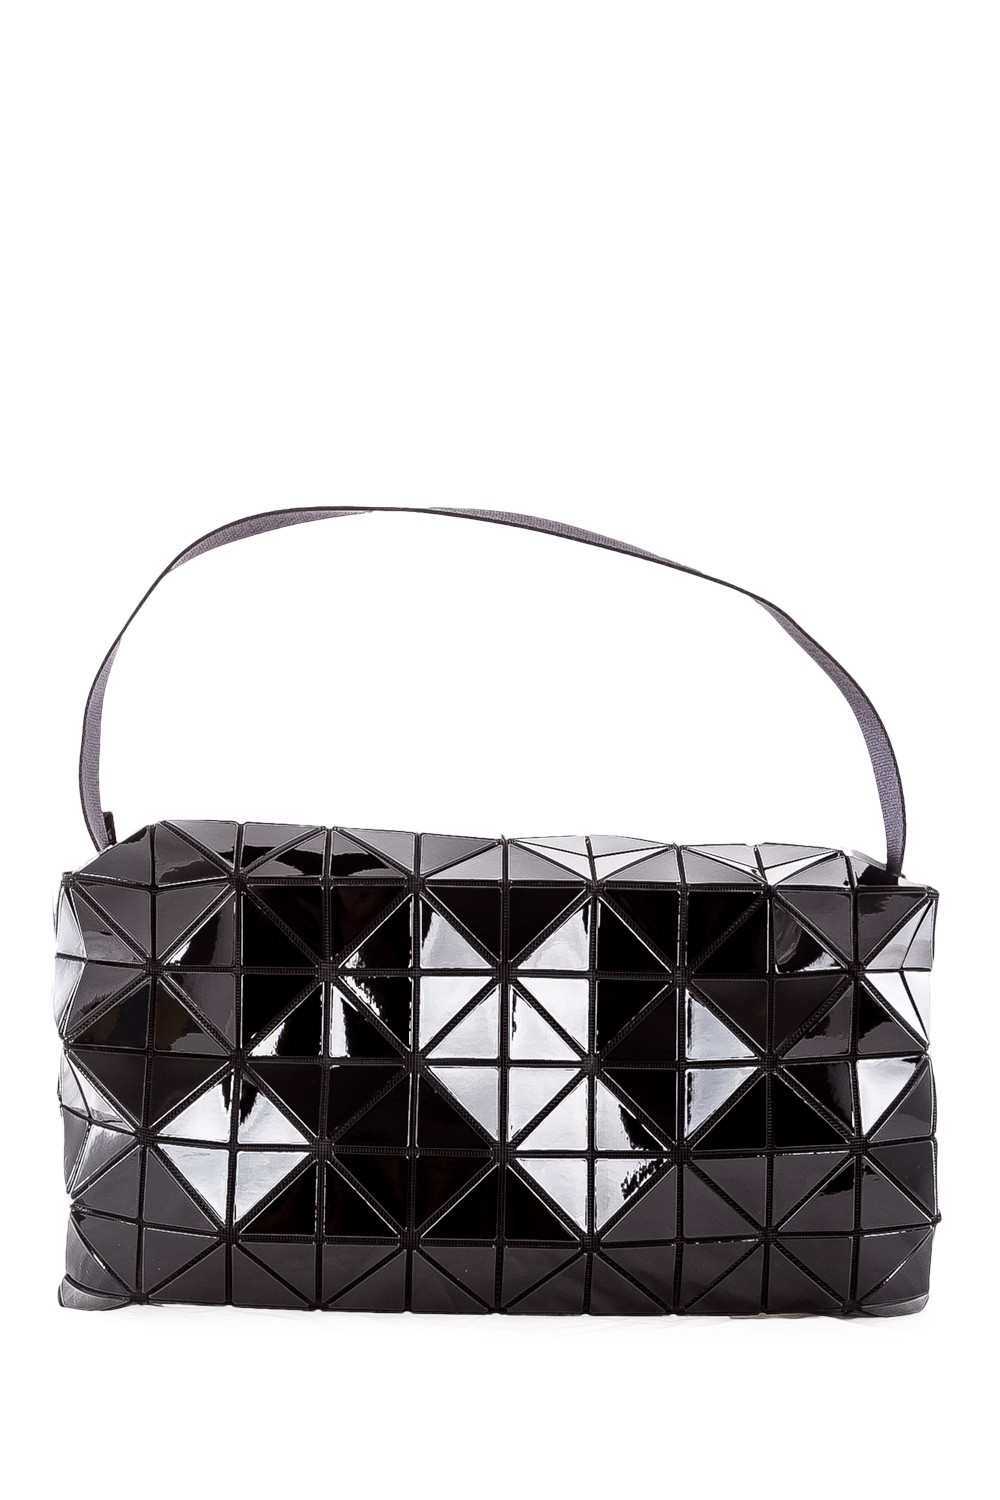 bao bao issey miyake carton s large messenger bag schwarz luxuryloft. Black Bedroom Furniture Sets. Home Design Ideas